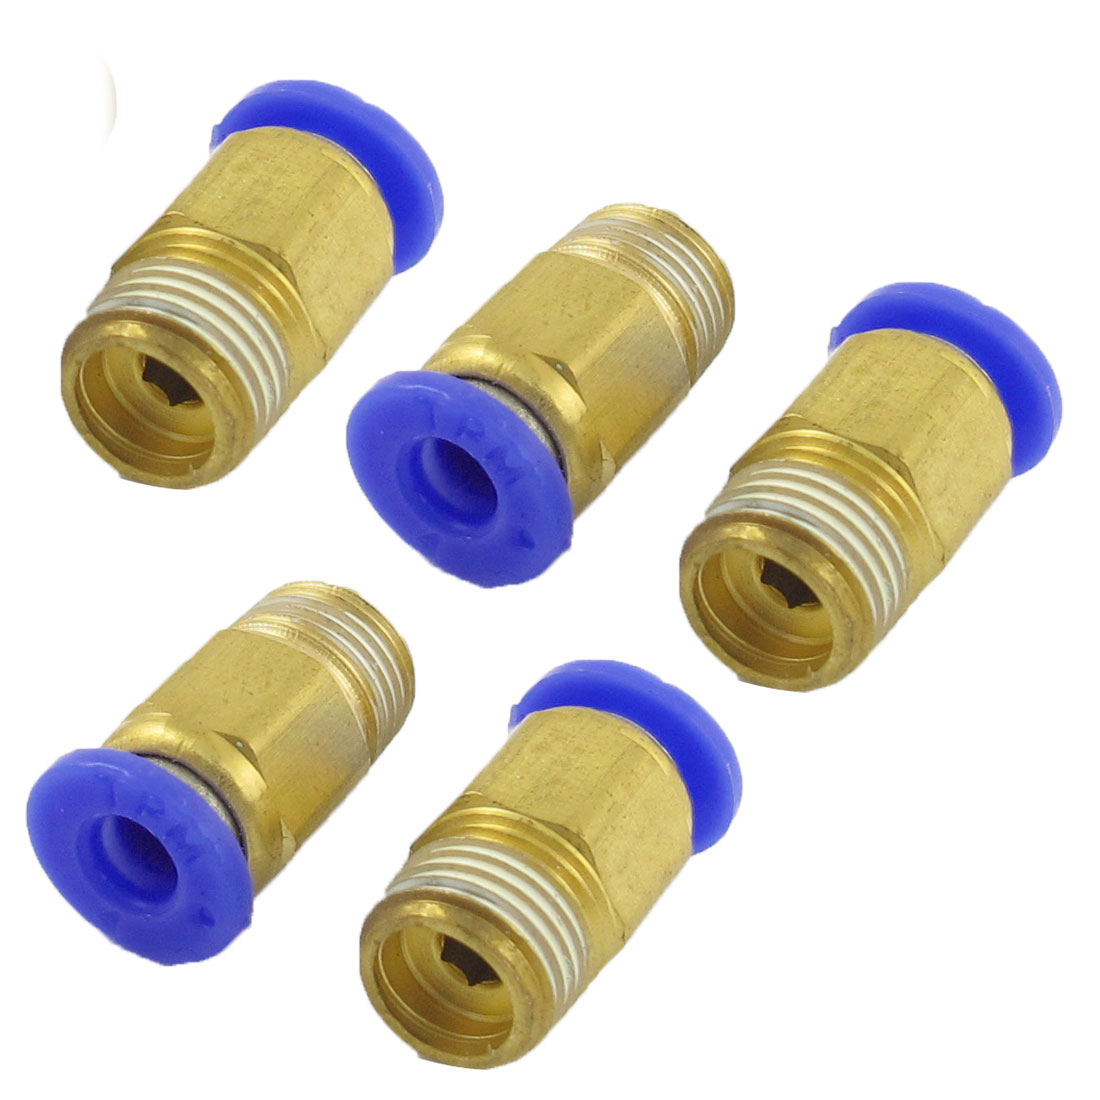 "4mm Hole 1/8"" PT Thread Straight Push in Tube Pneumatic Quick Fitting 5 Pcs"